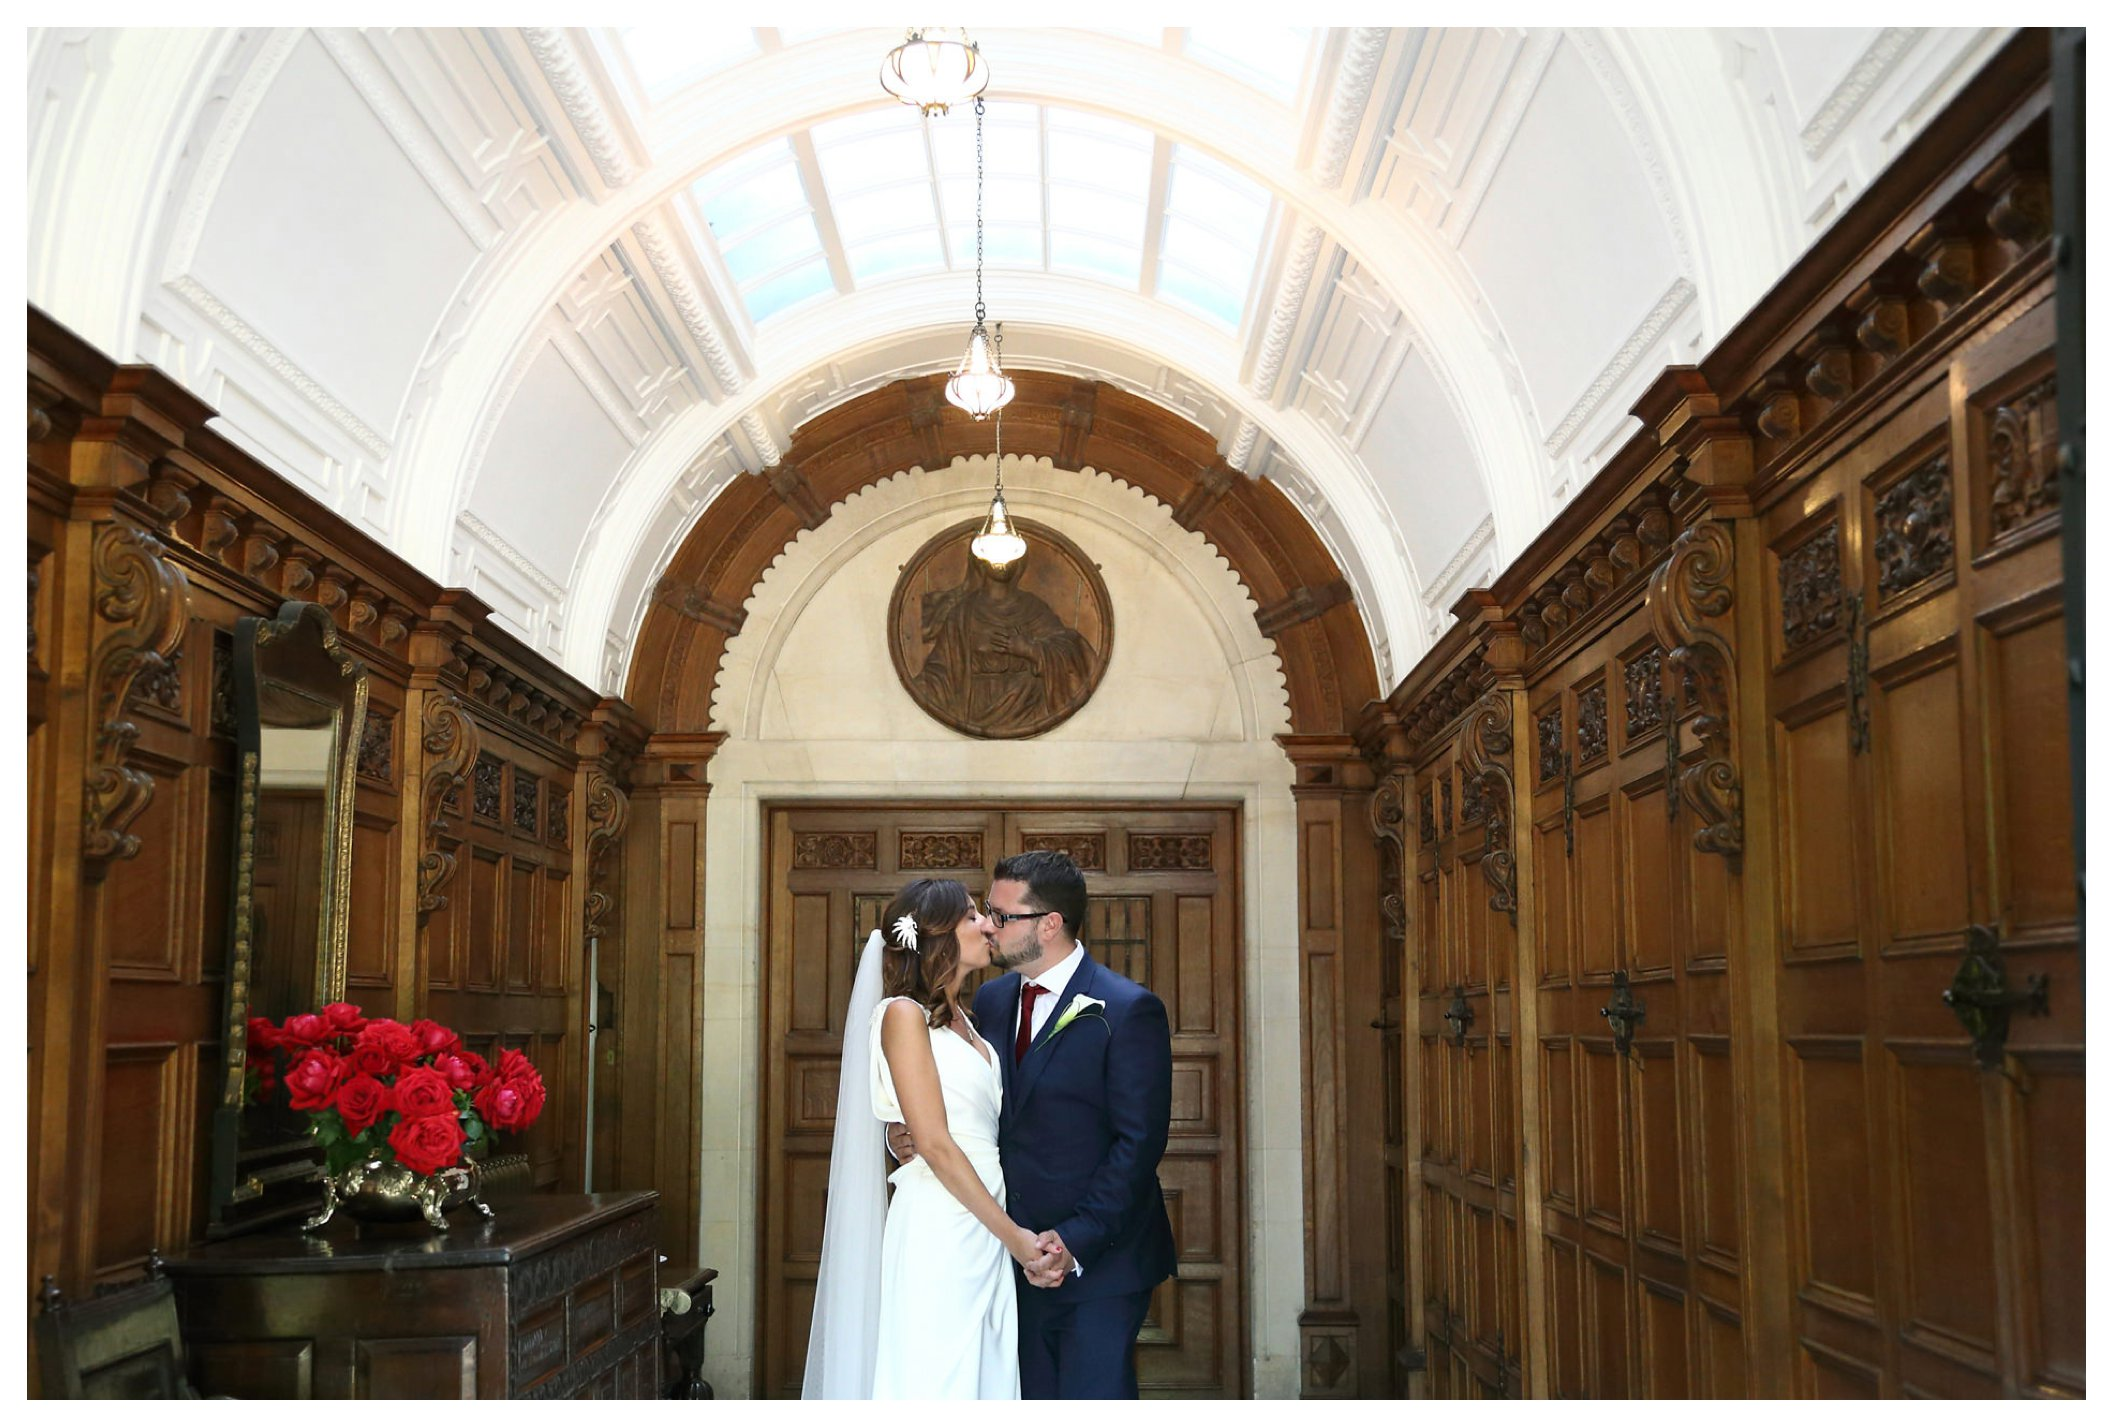 just married couple at Longstoew Hall in Cambridge in hallway